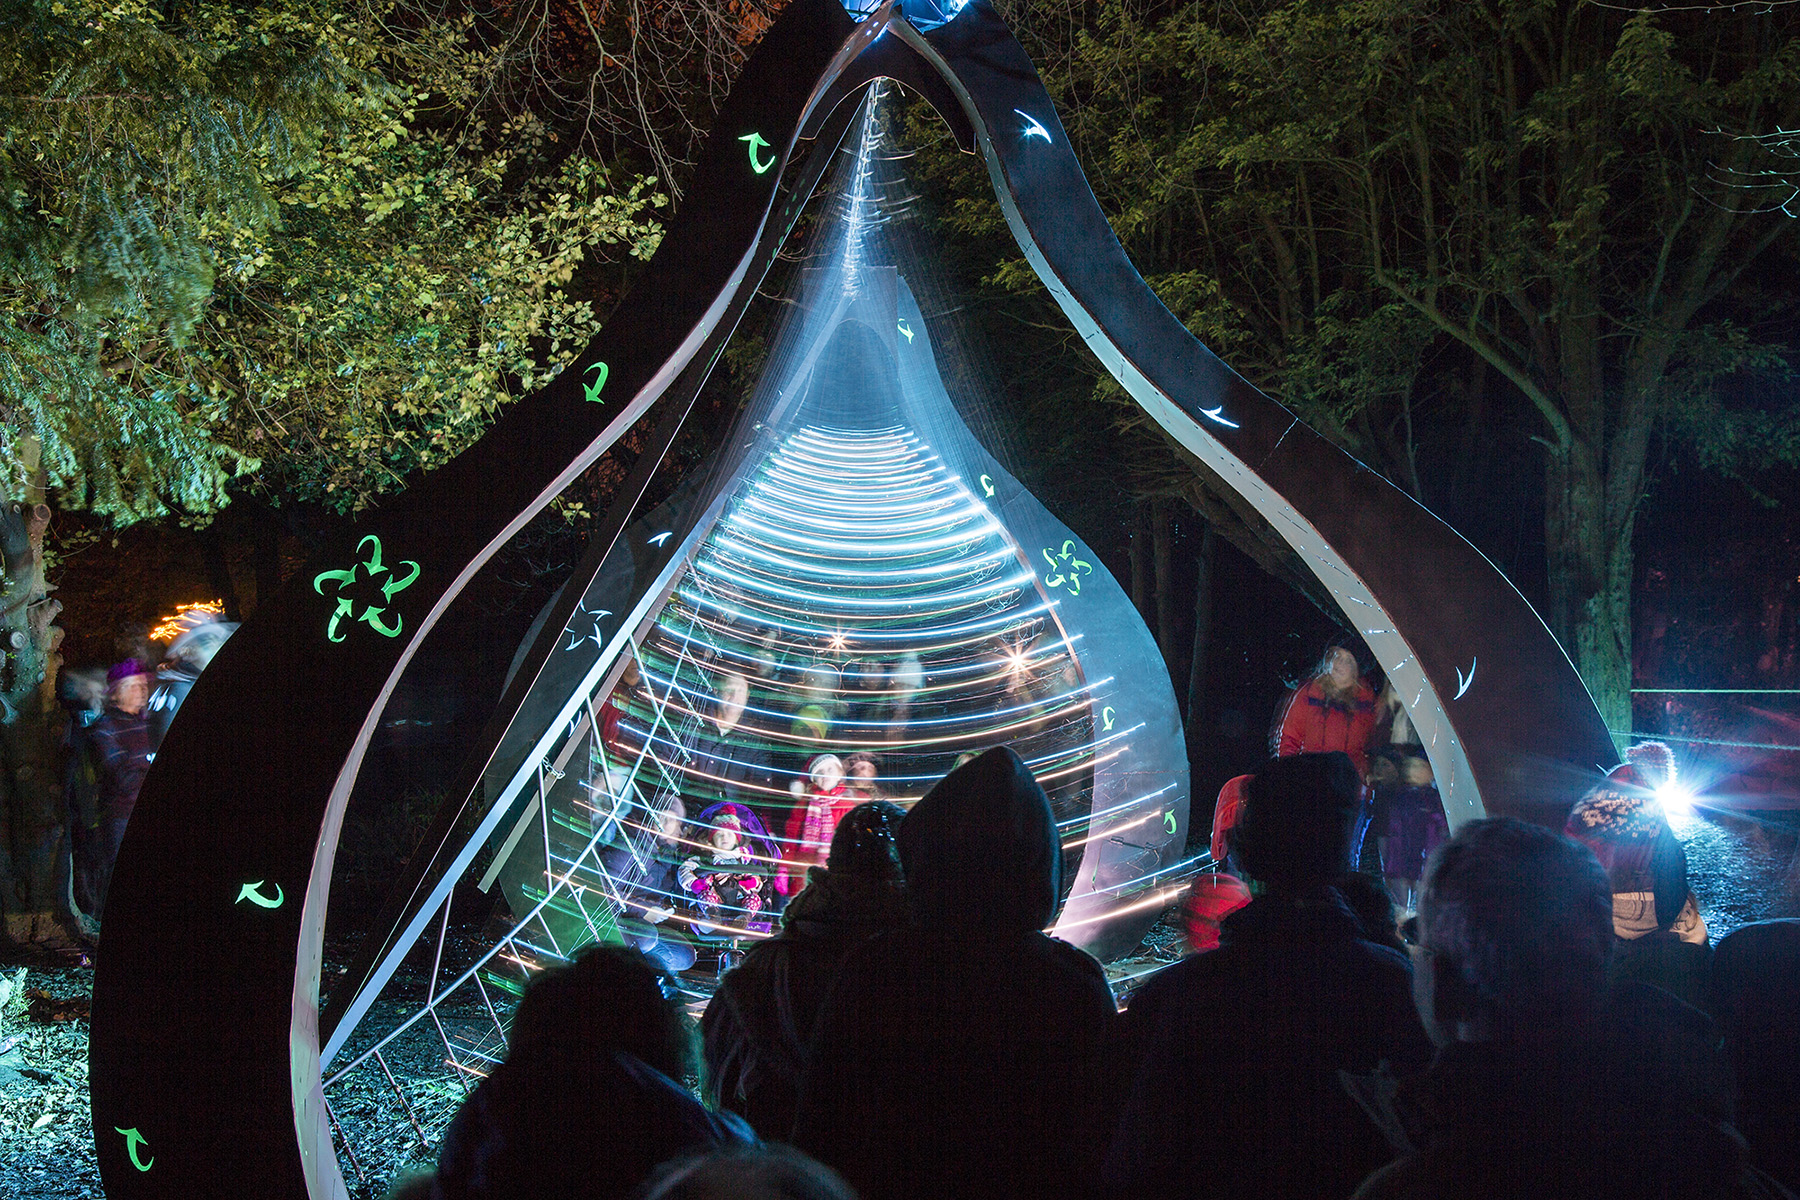 Pendulum Wave Machine from Travelling Light Circus at Enchanted Parks